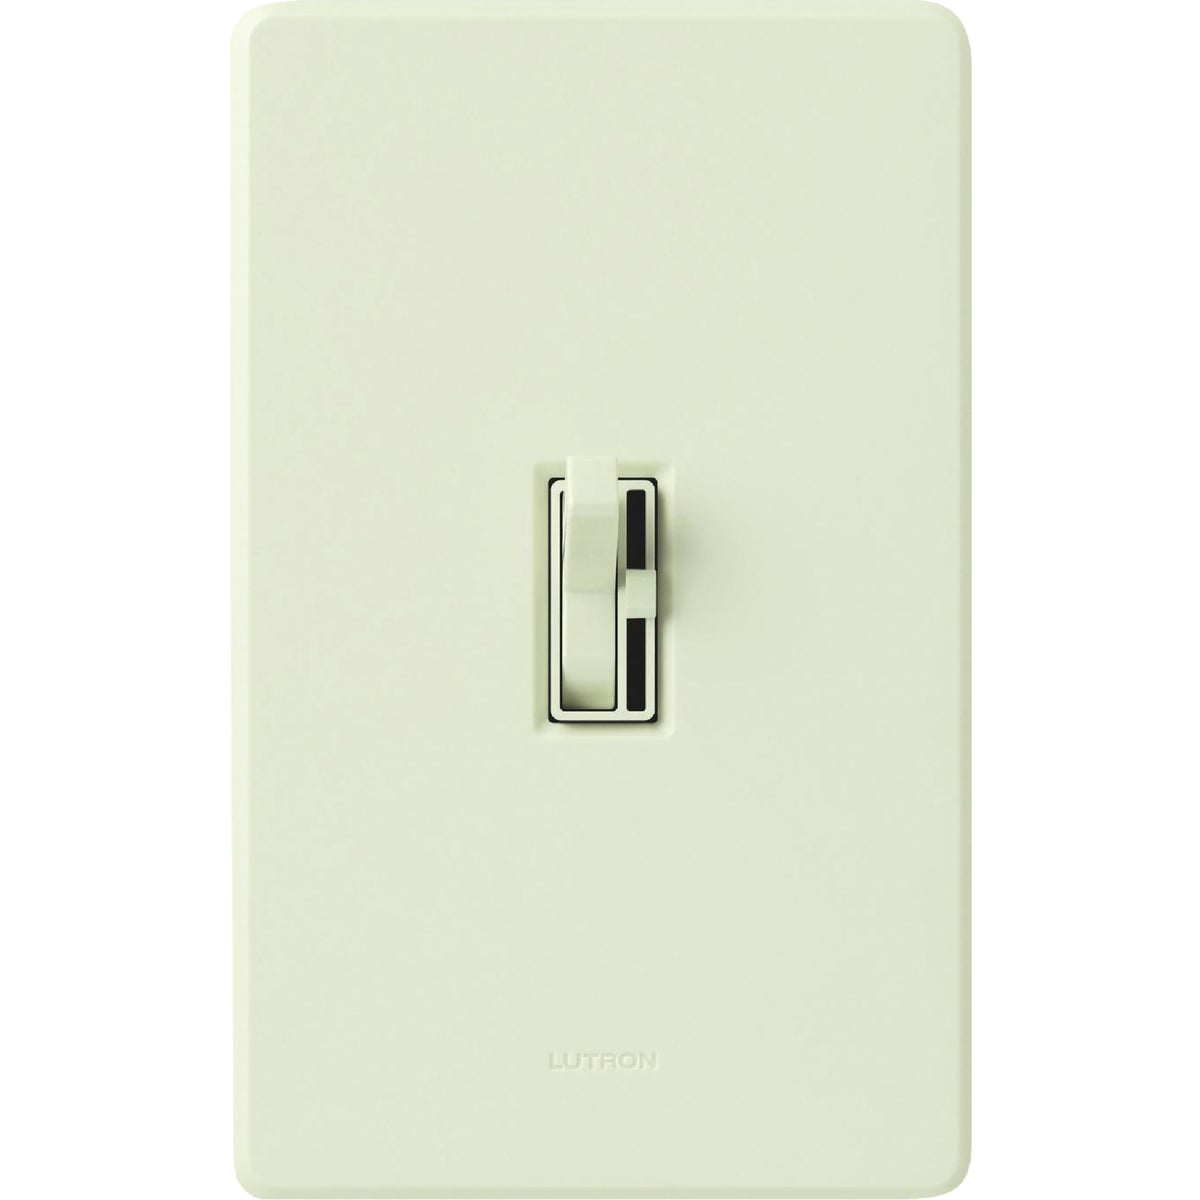 IT ALM TOGGLE DIMMER - TG-603PH-LA by Lutron Elect Co Inc